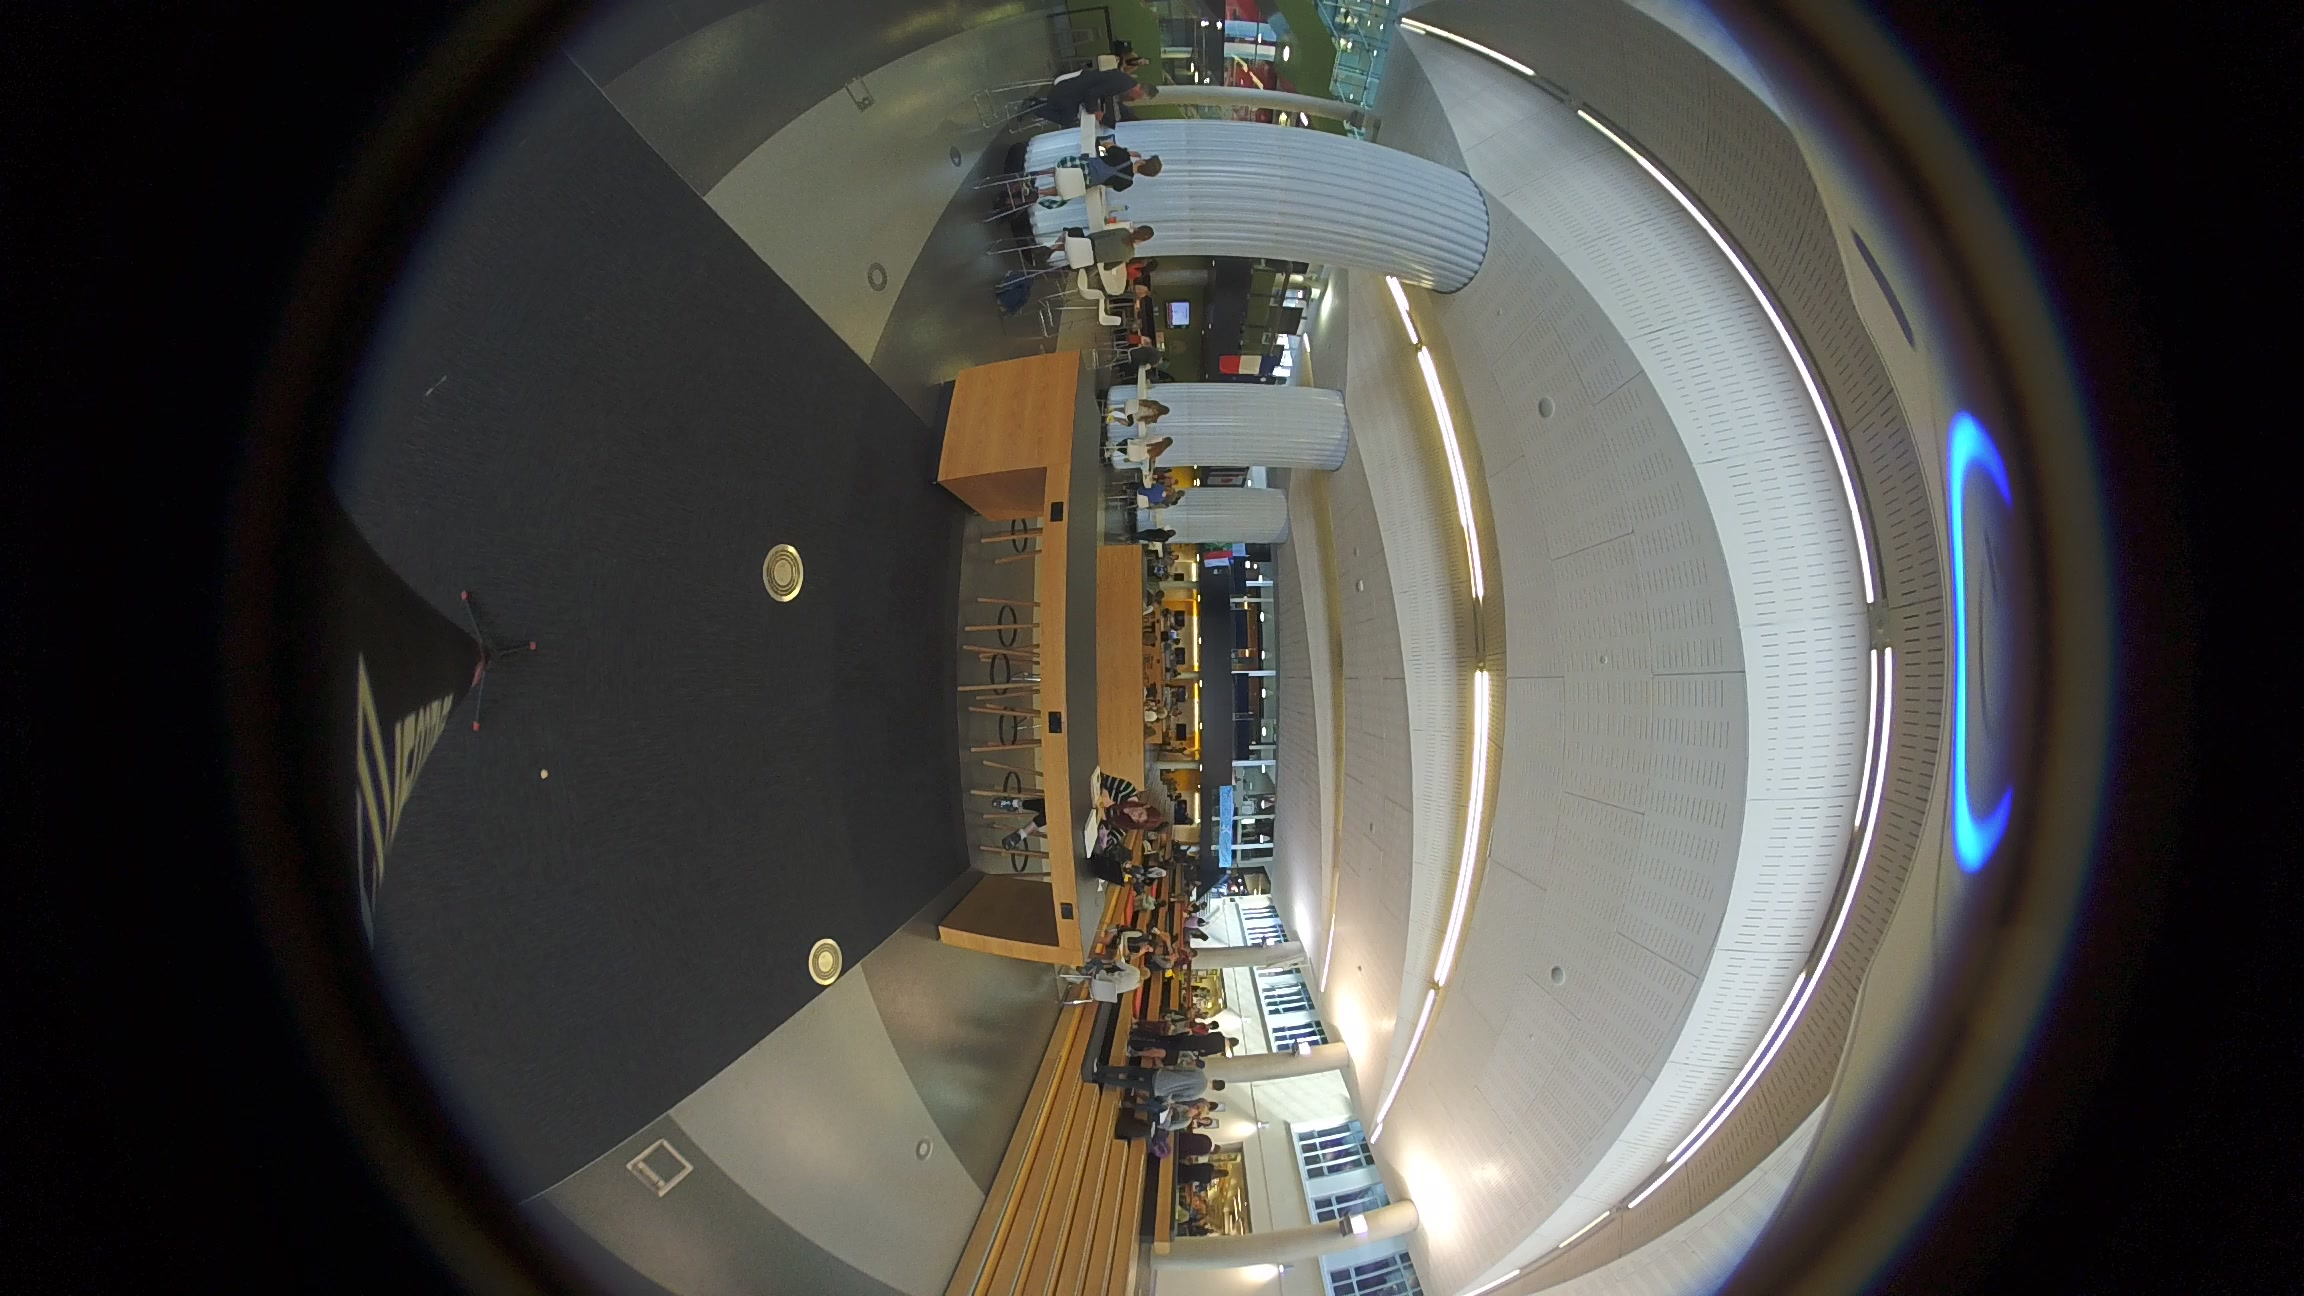 Stitch 2 fisheye images in Java for VR Video - OpenCV Q&A Forum